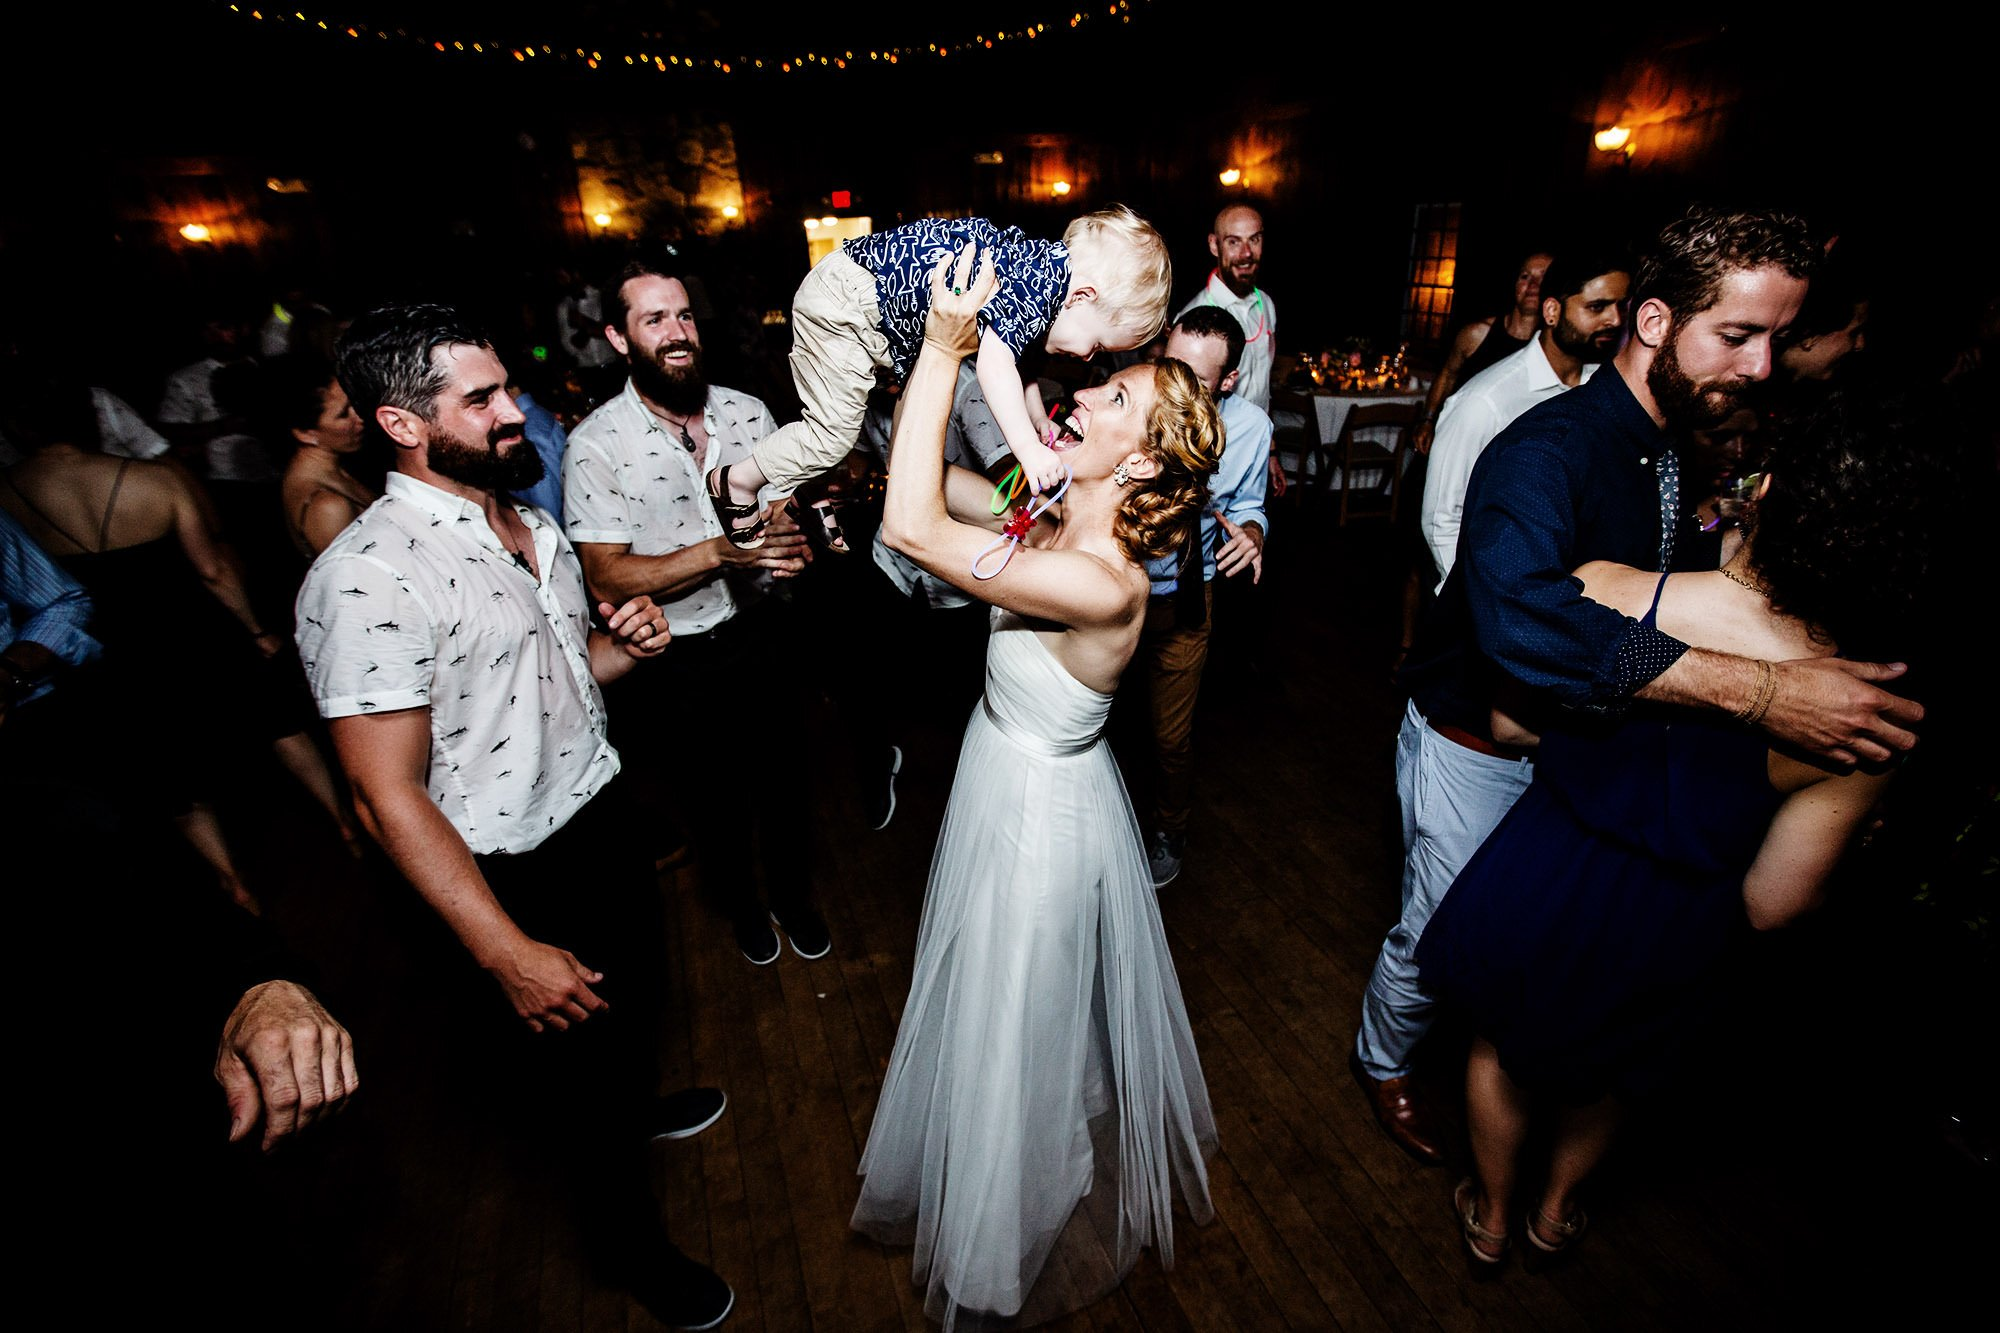 Guests dance during the reception at Mount Hope Farm.